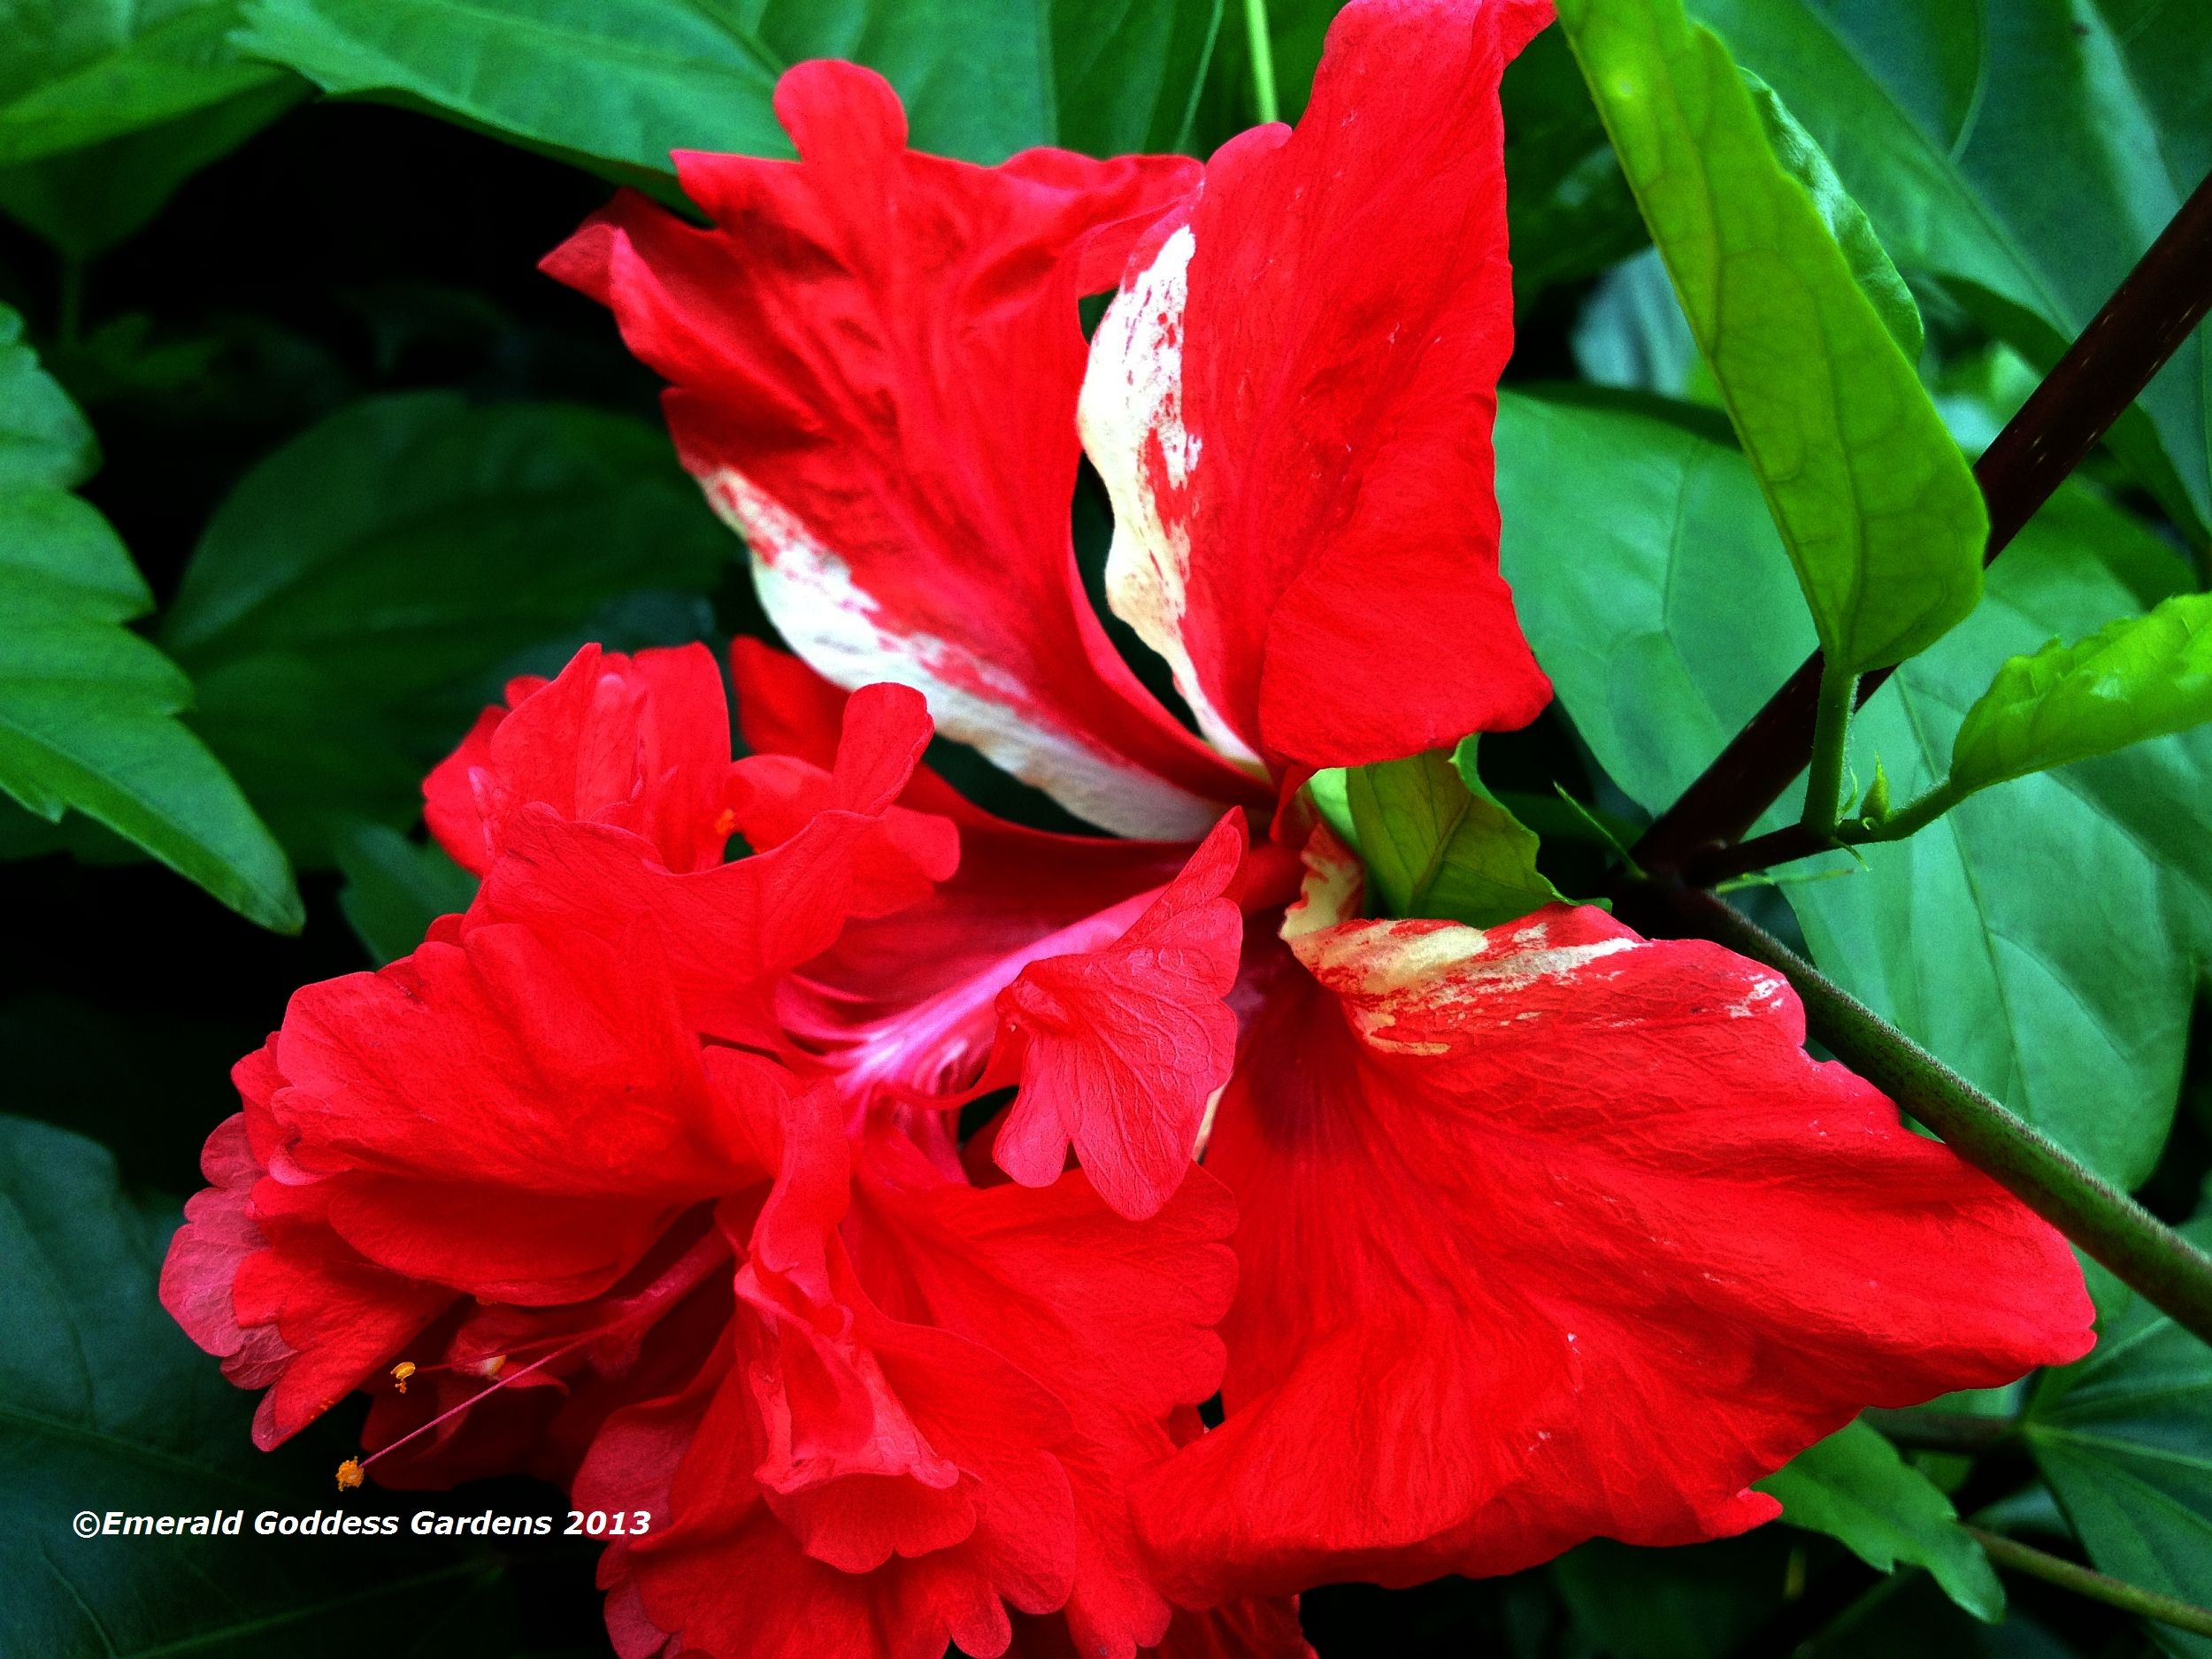 RED Lions Tail Tropical Hibiscus Live Plant Rare Unusual Pom Pom Poodle Tail Flower El Capitola Starter Size 4 Inch Pot Emeralds TM - Click Image to Close